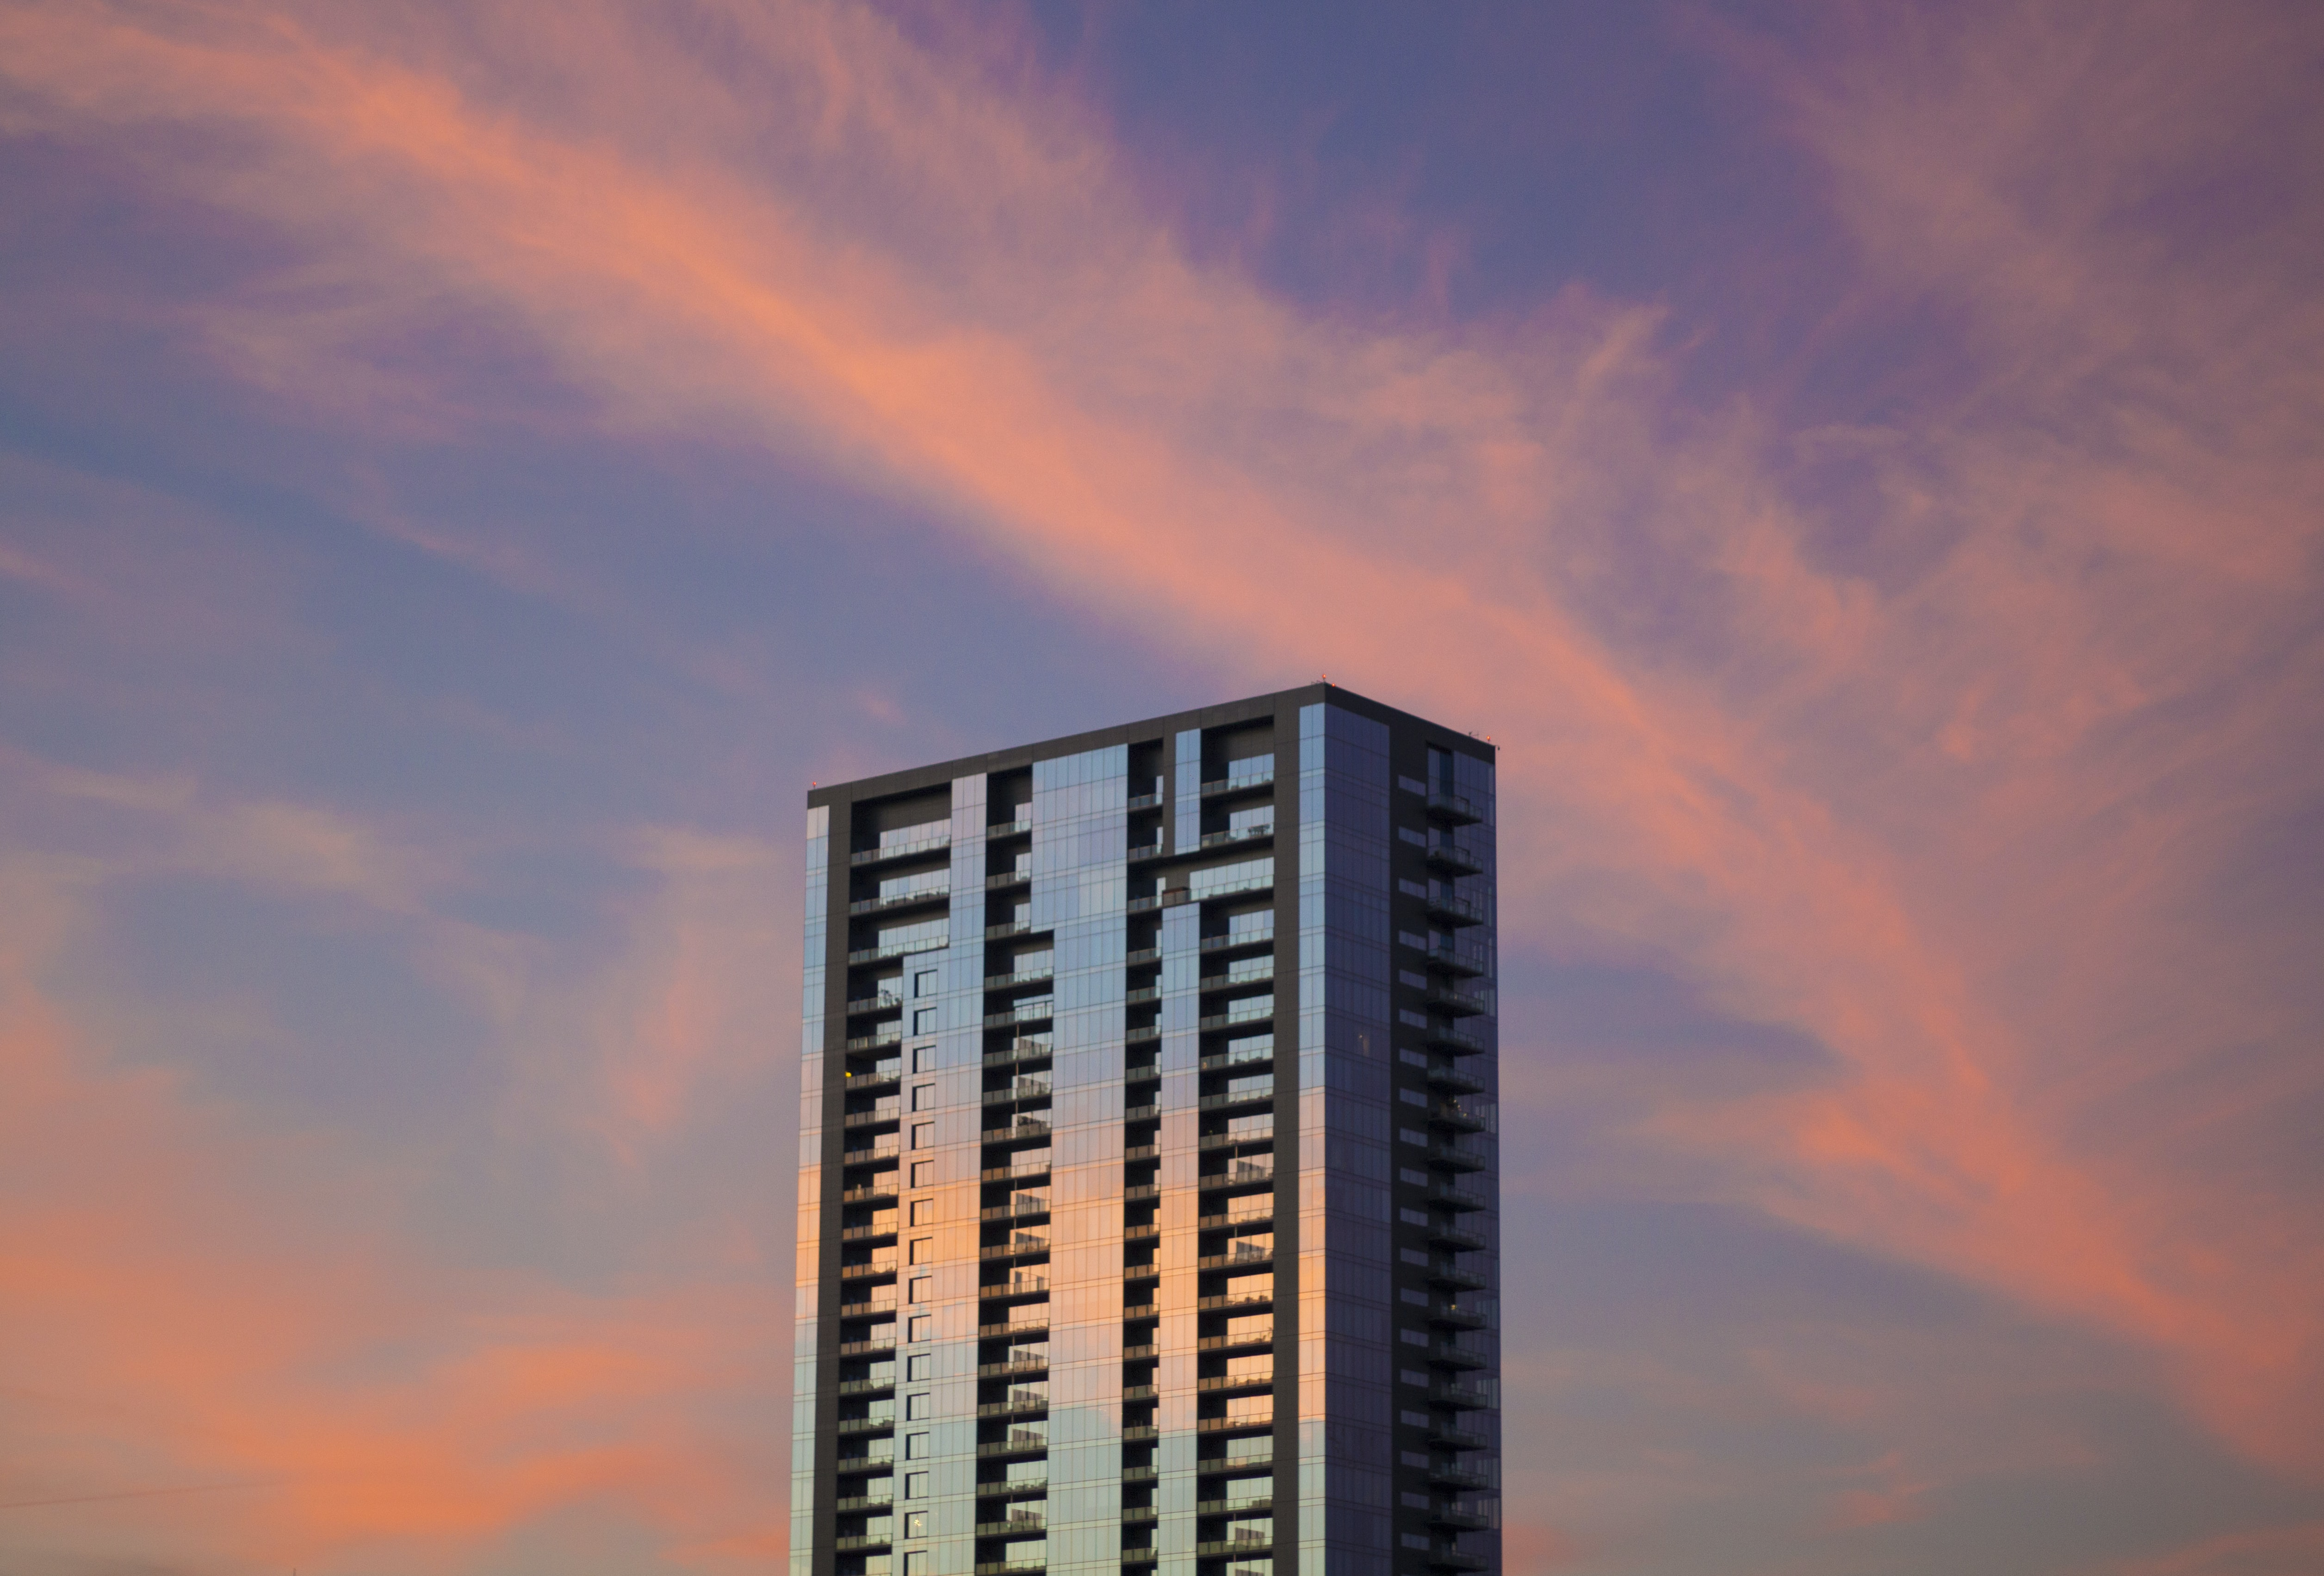 A skyscraper reflecting the purple and pink cloudy sky at sunset in Austin